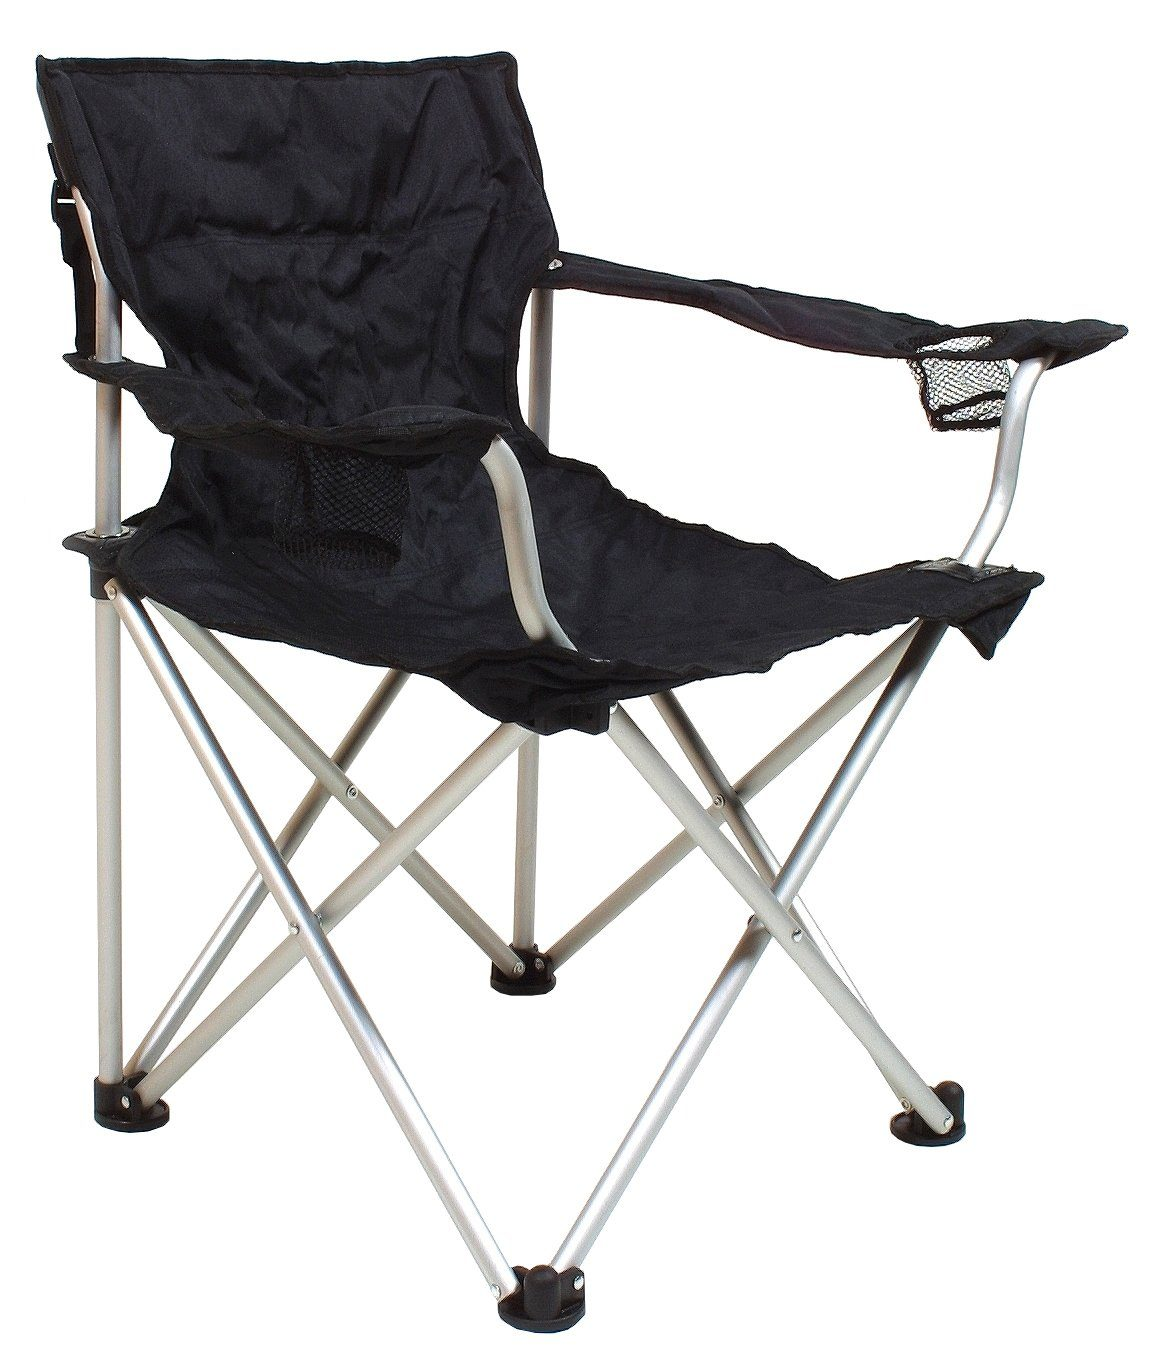 Relags Camping-Stuhl »Travelchair«